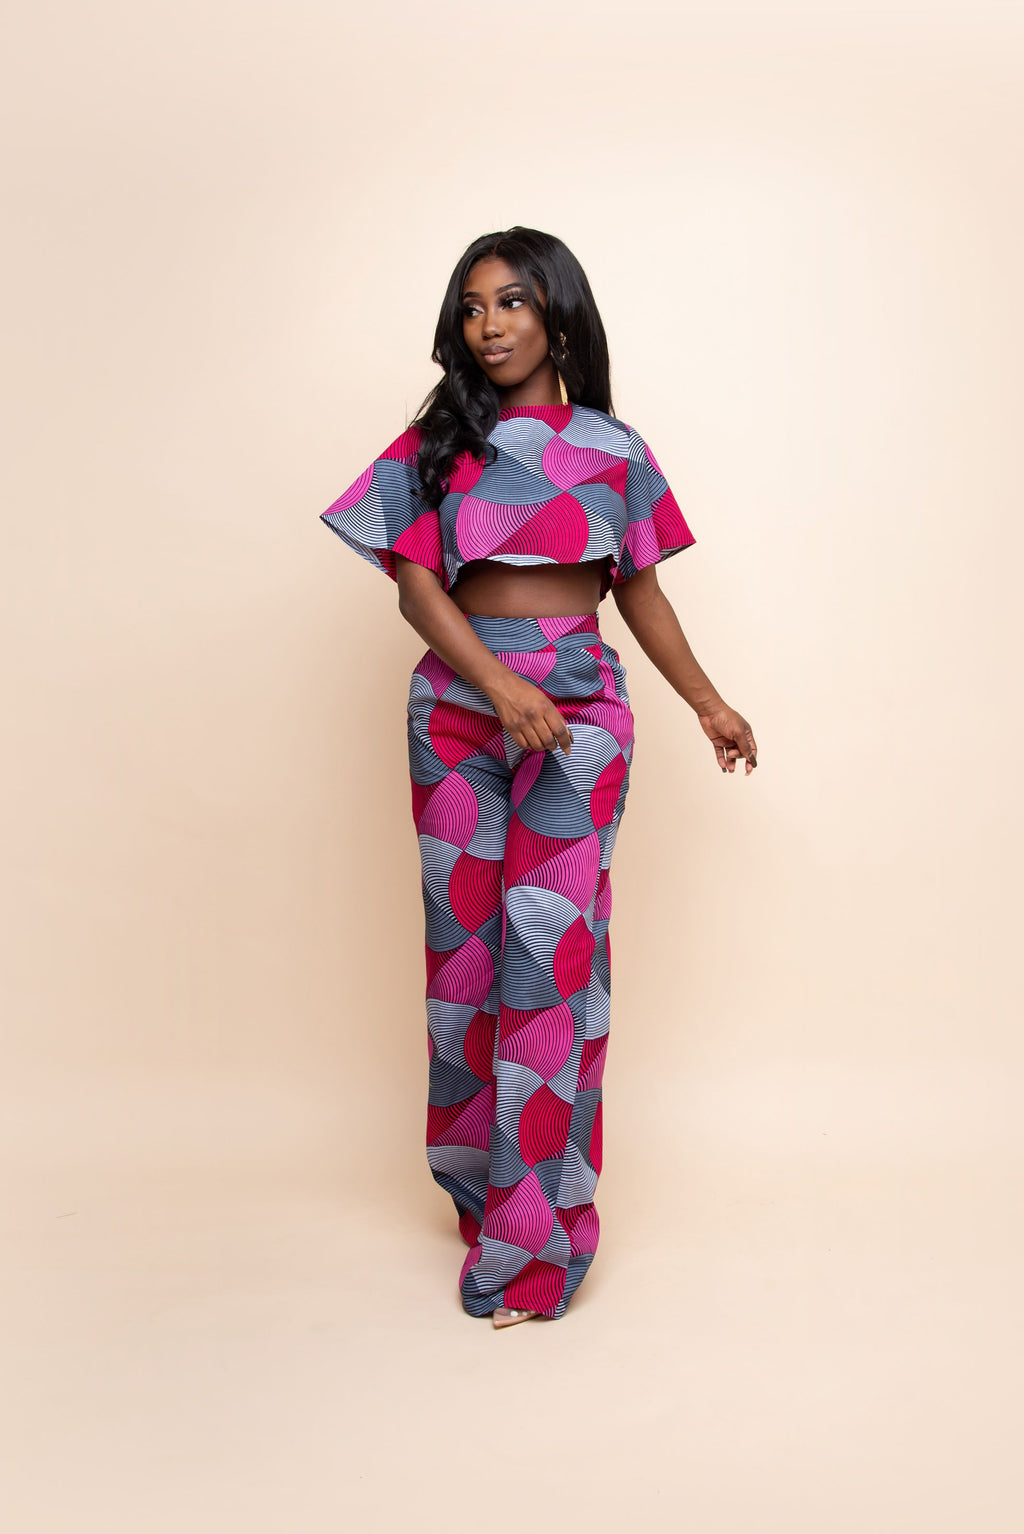 TOLANI African Print Crop Top (short sleeve)